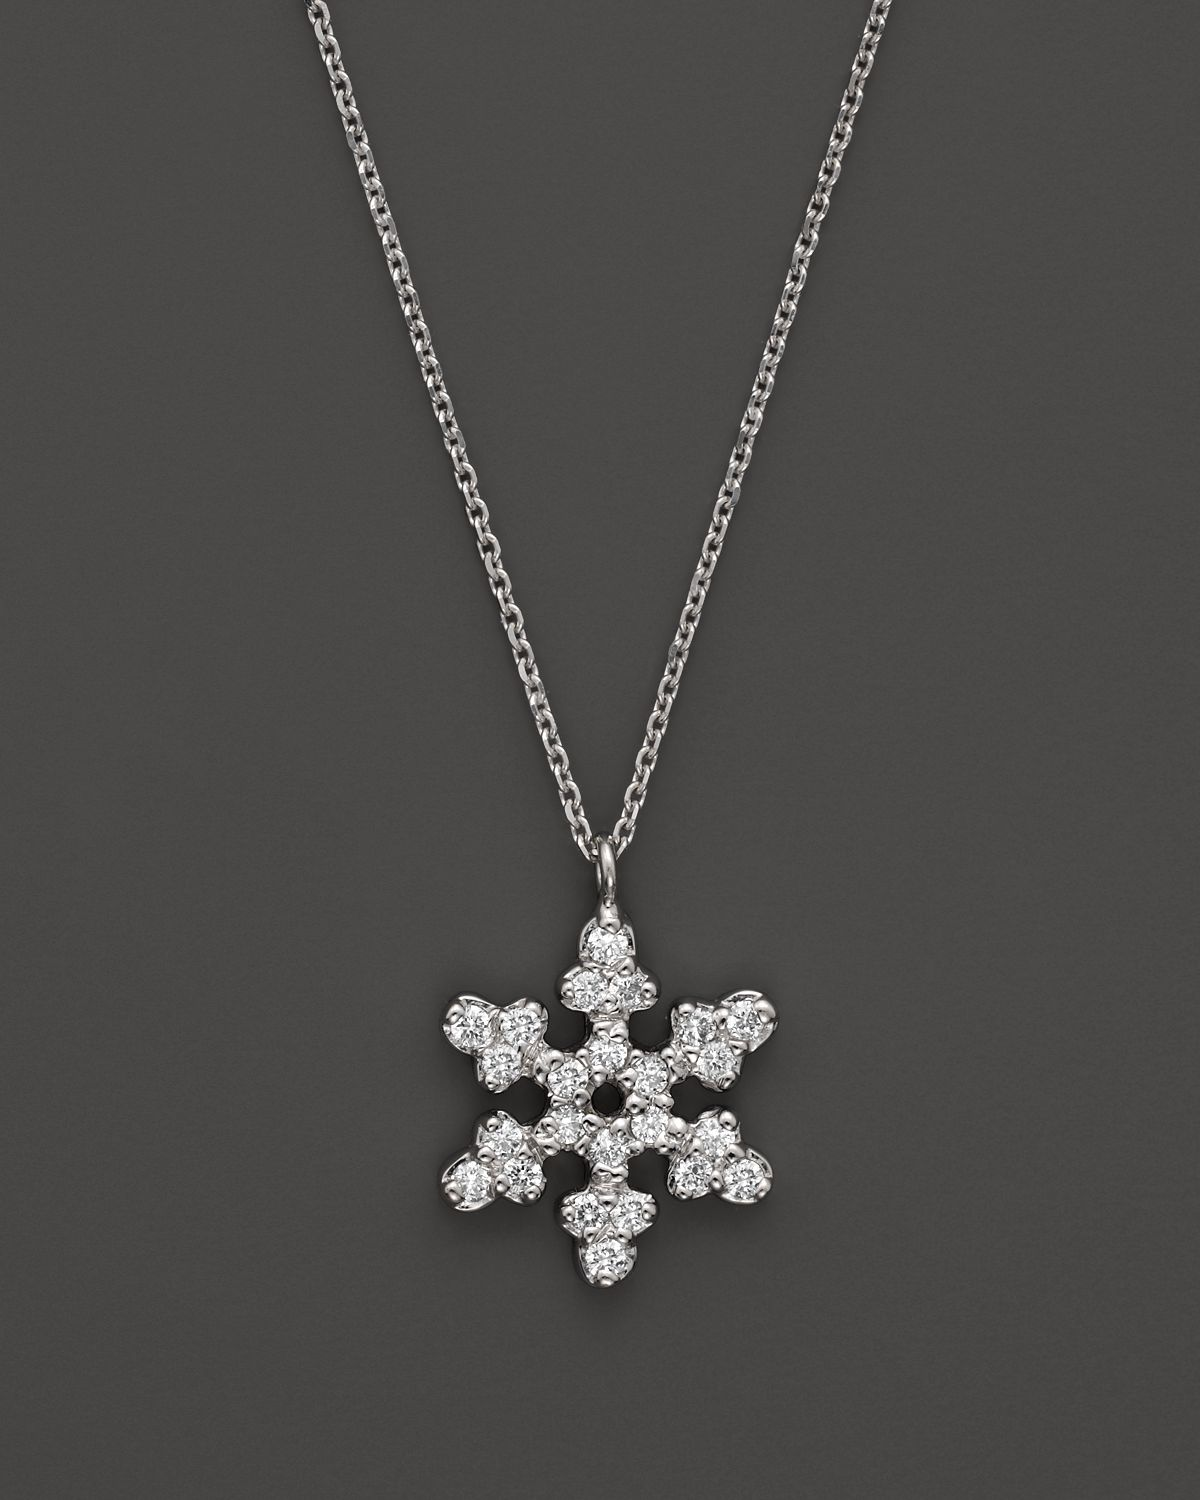 Lyst kc designs diamond snowflake pendant in 14k white gold 14 ct gallery mozeypictures Gallery